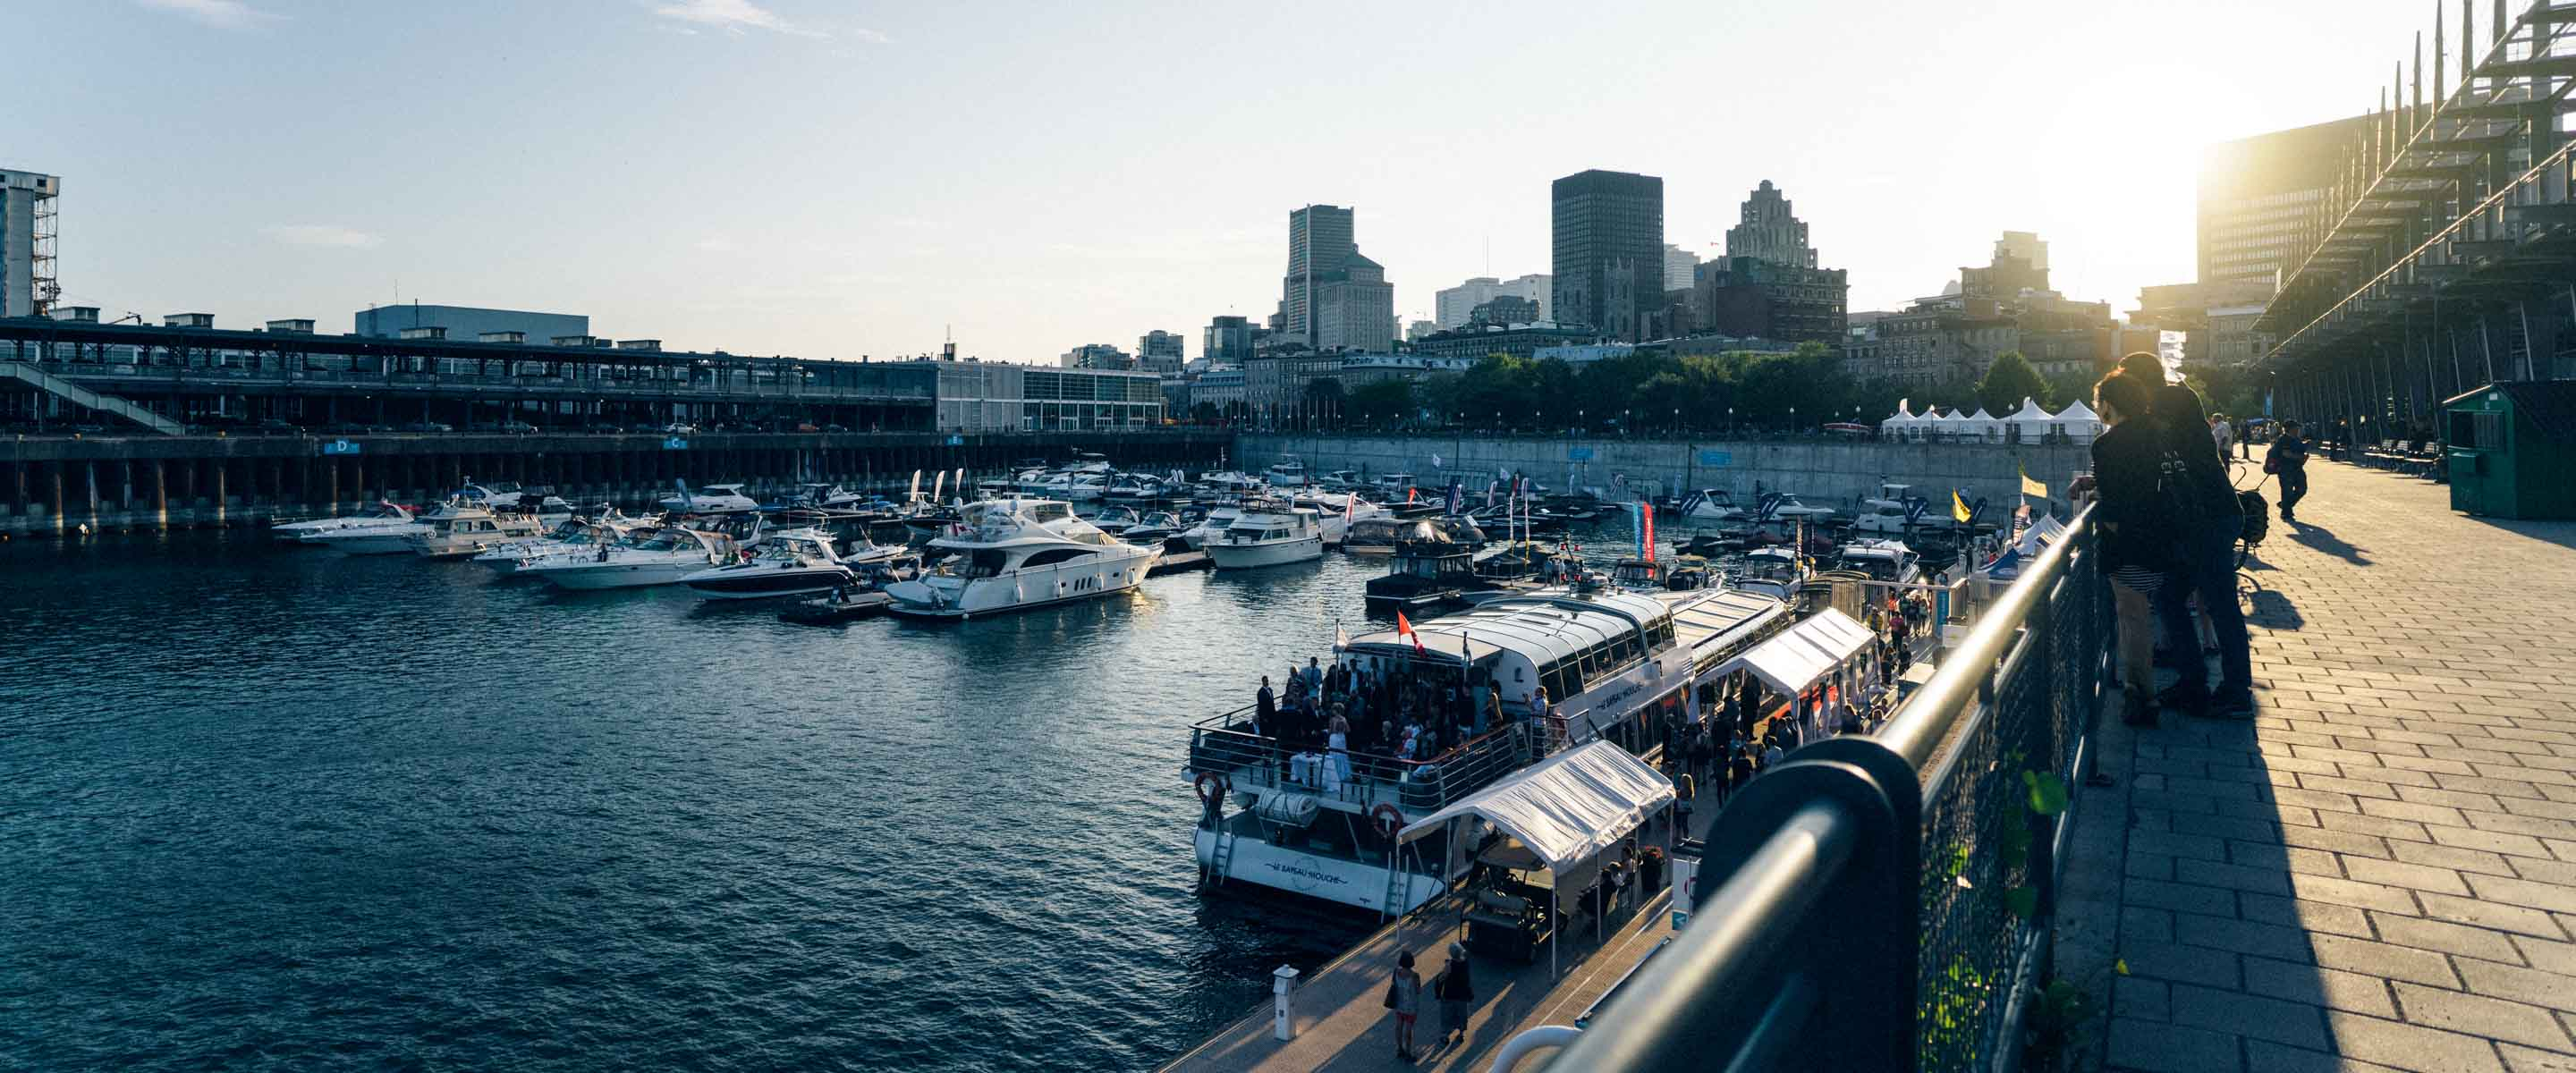 a harbor in montreal with a bunch of boats